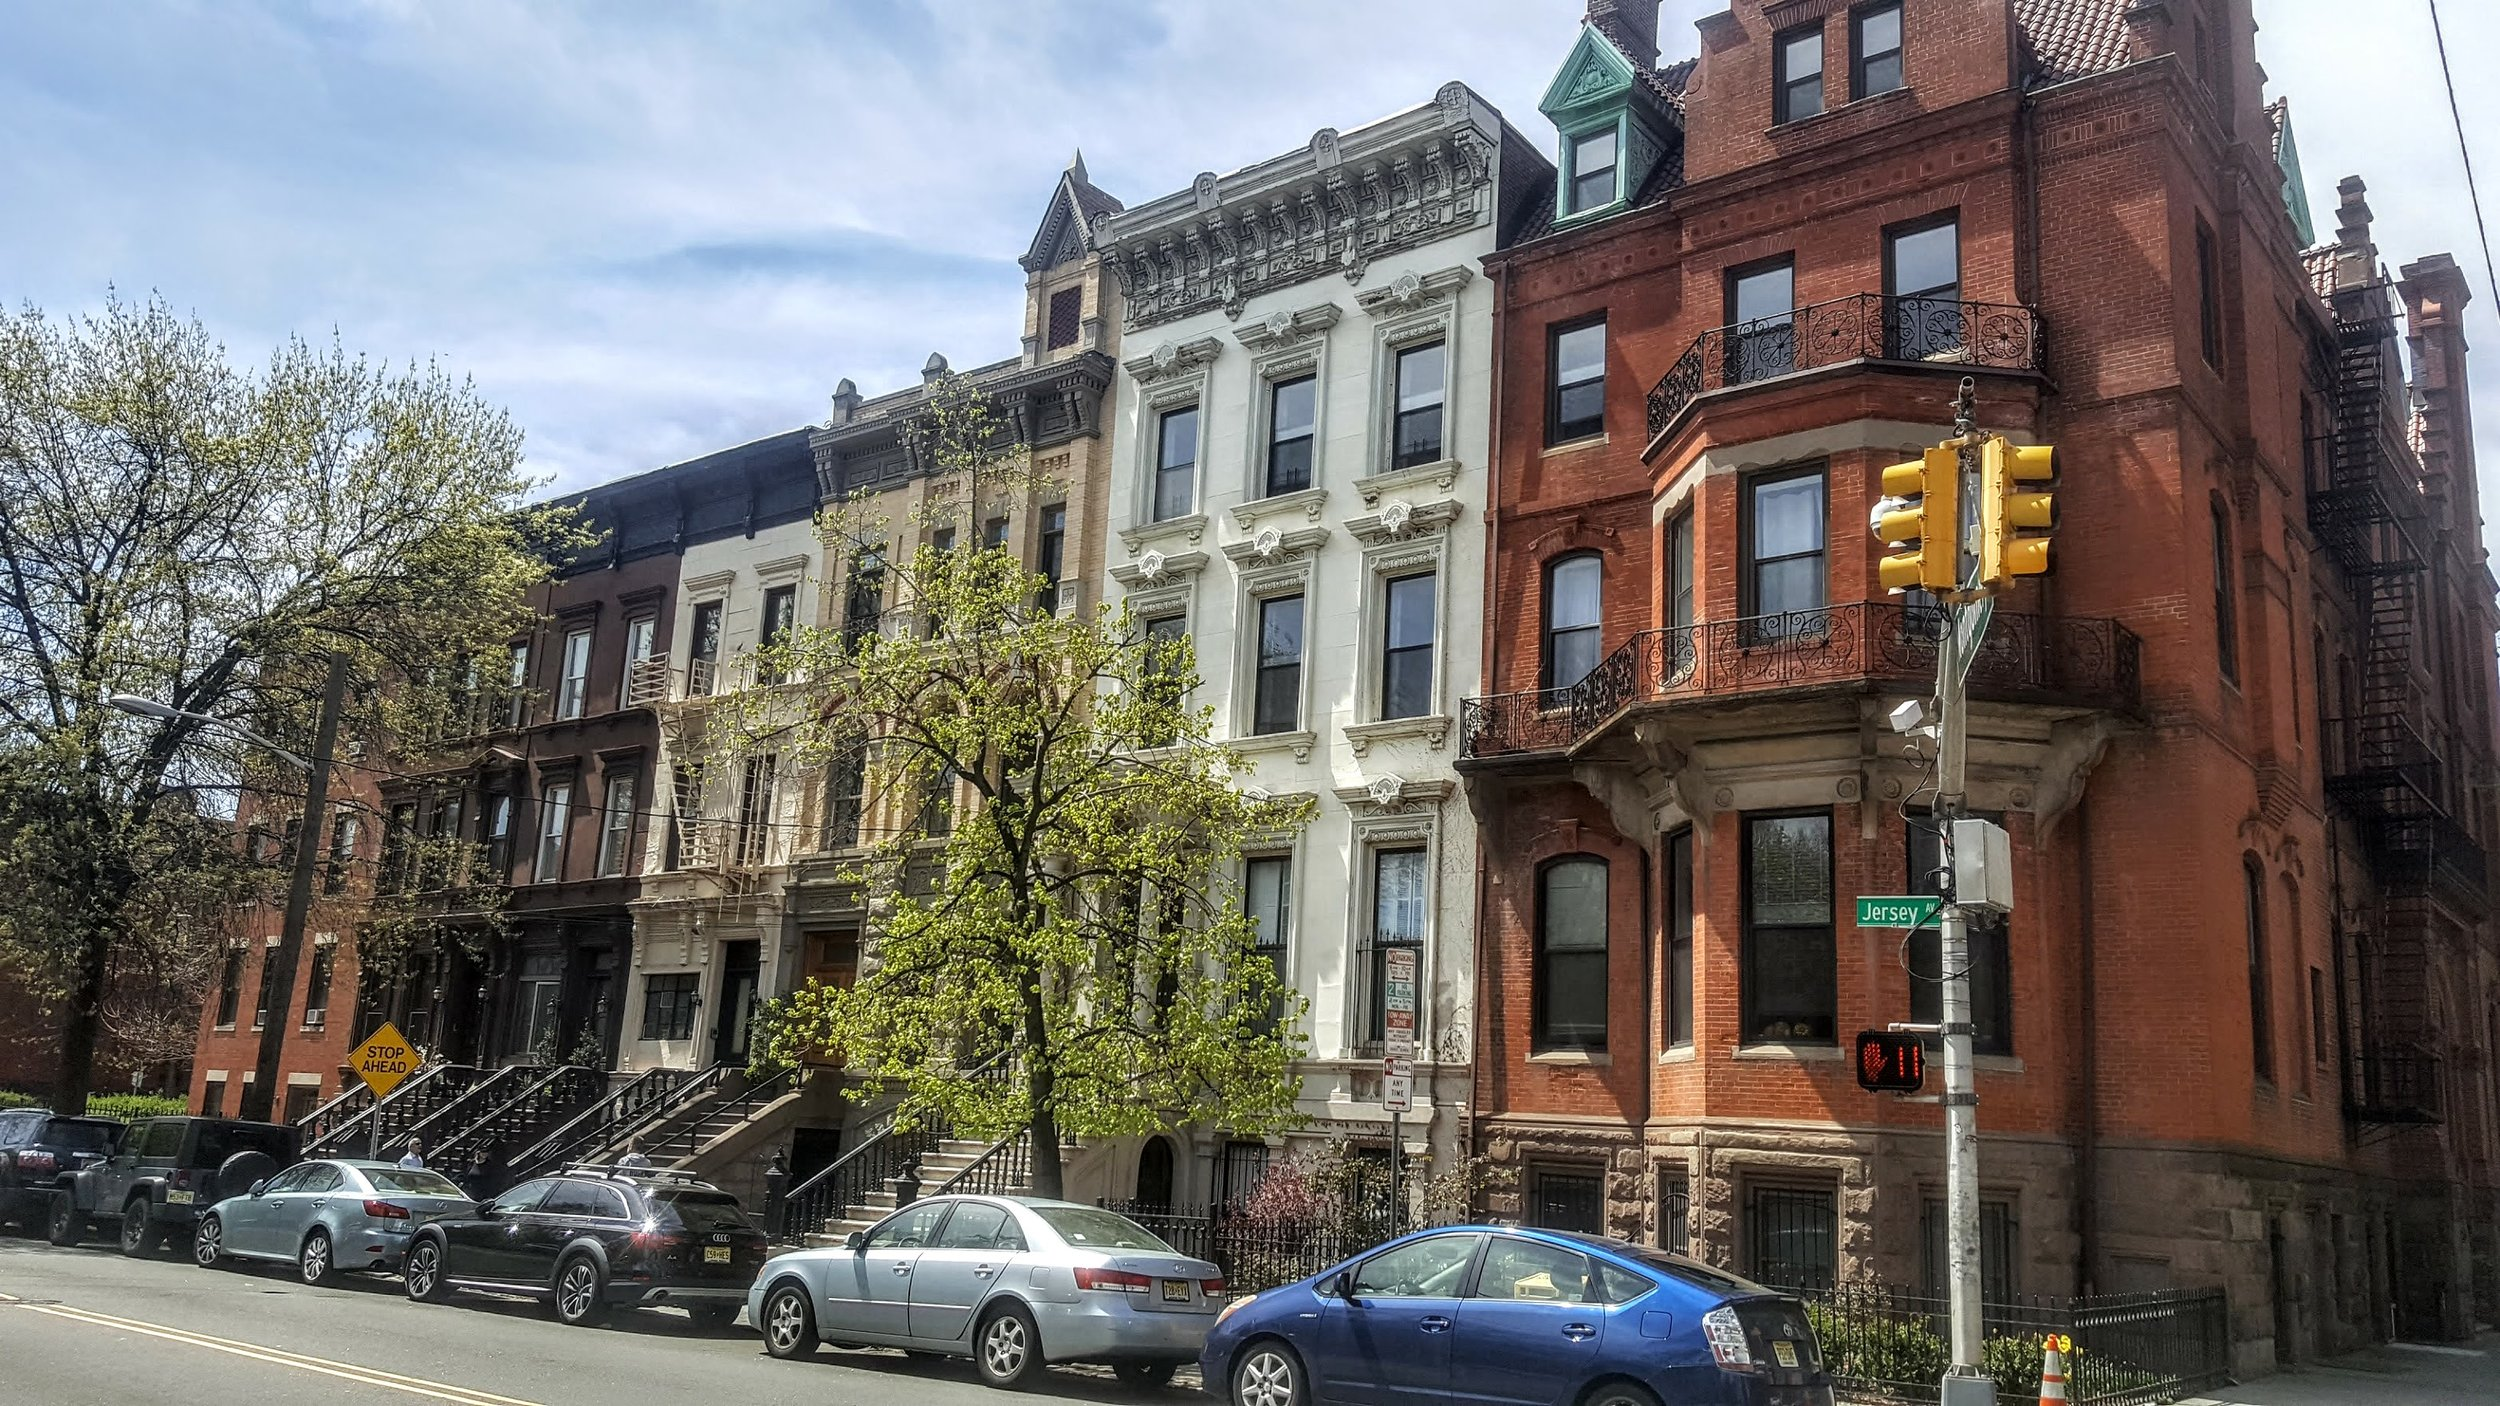 A residential street in Jersey City very close to Van Vorst Park (which we will talk about in a moment). The lack of large setbacks and dedicated greenspace in the neighborhood brings just about everything nearby into walking distance.